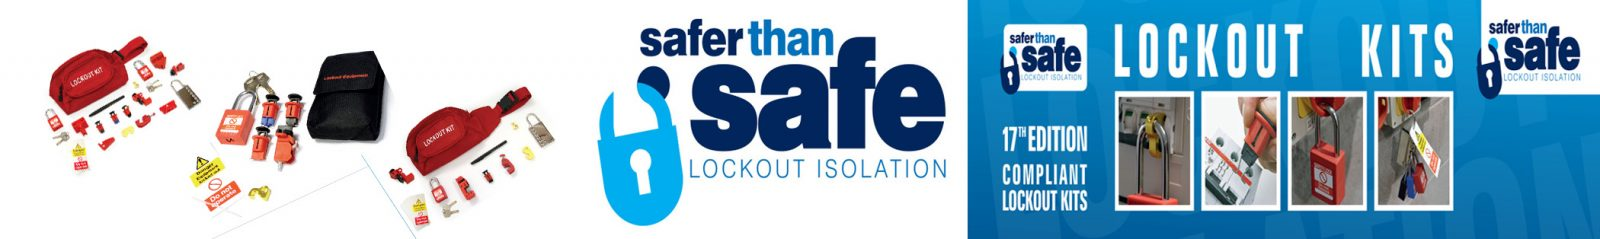 Safer Than Safe01